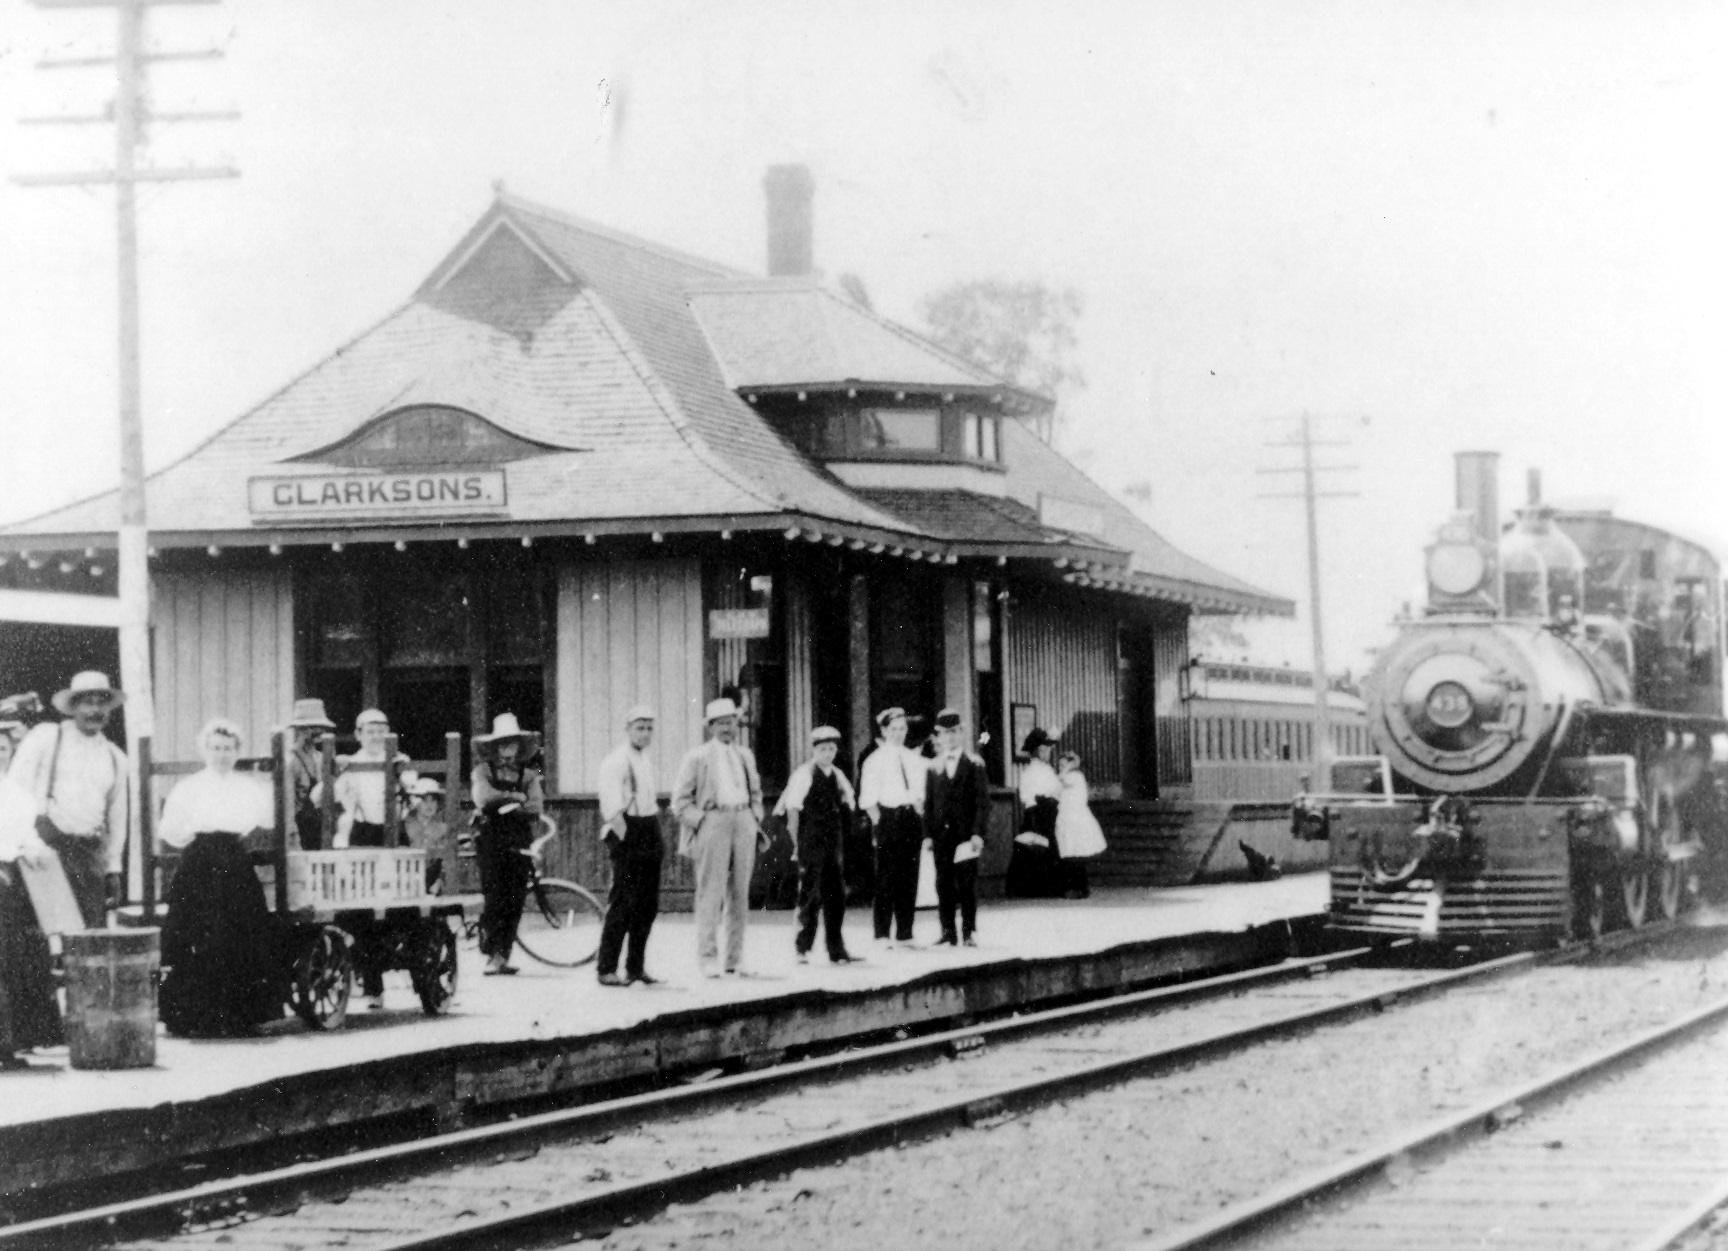 Clarkson Train Station, Great Western Railway, c1900